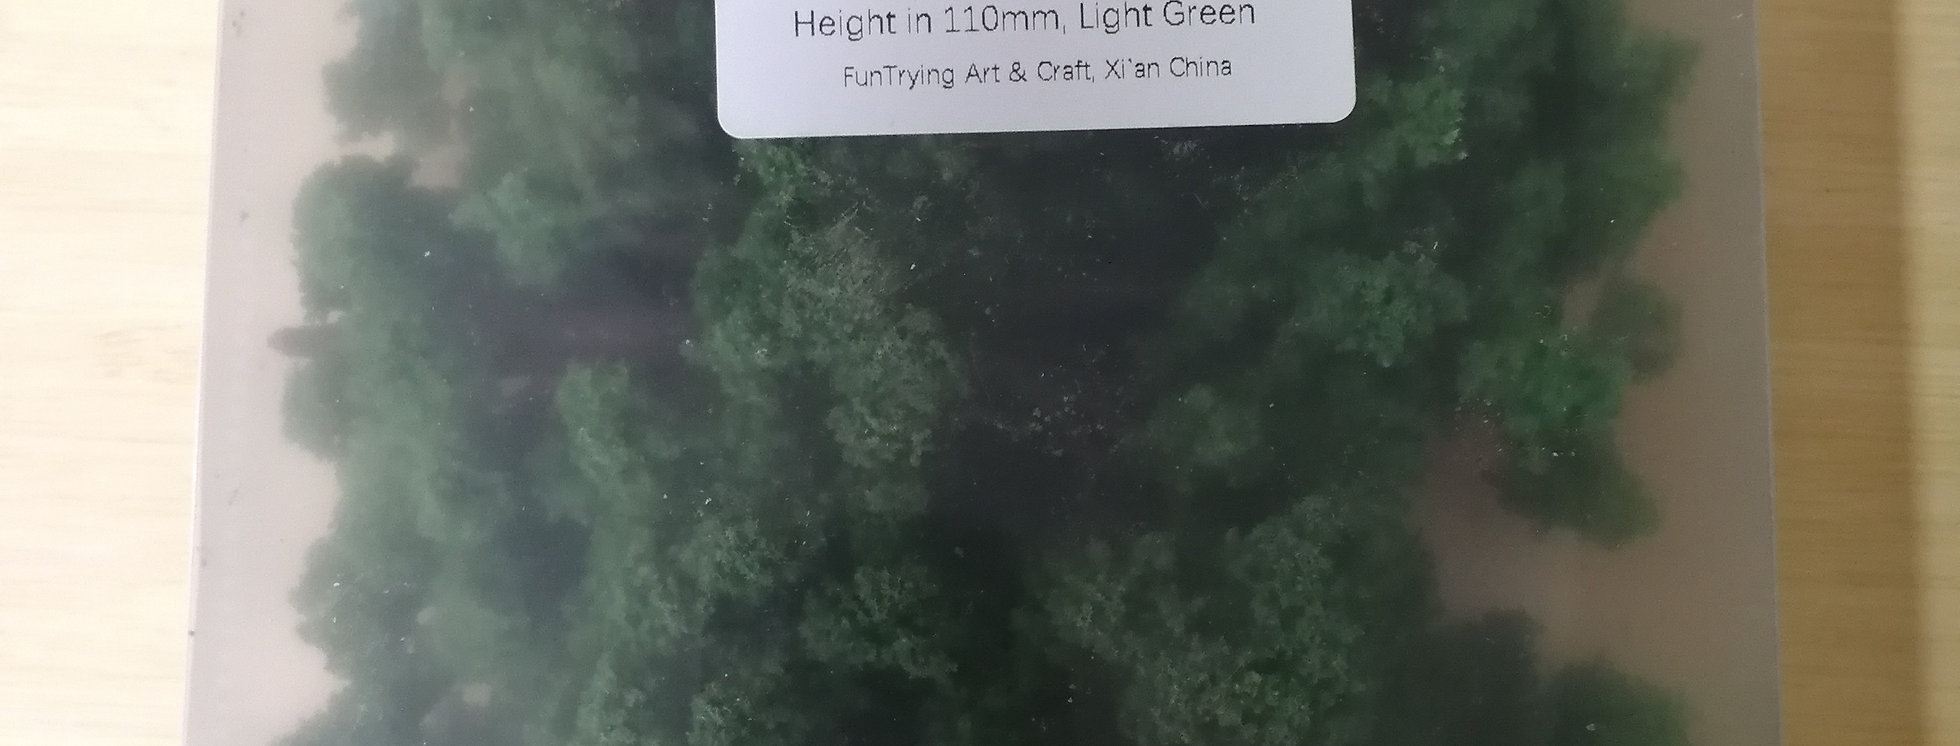 10 Pcs 1/87 HO Scale Model Trees tall in 110mm with 18mm Pin